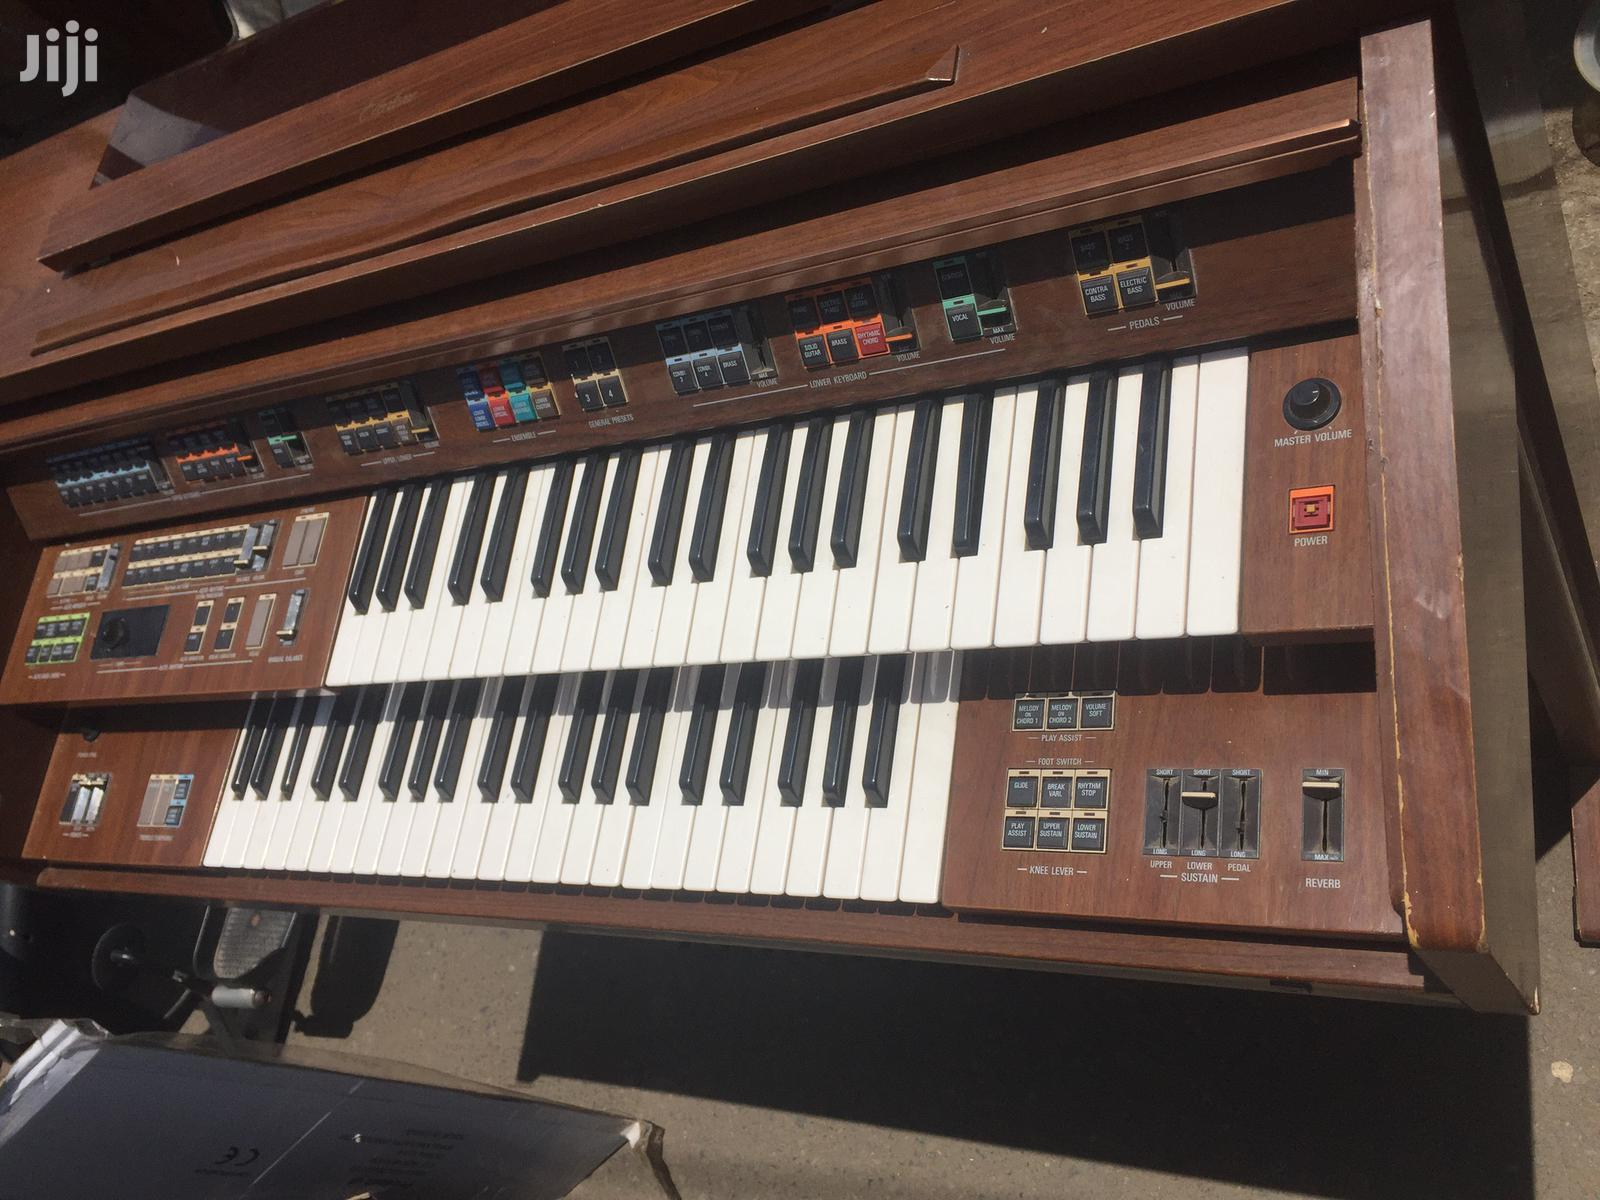 Yamaha Electone PE-50 Organ Keyboard | Musical Instruments & Gear for sale in Nairobi Central, Nairobi, Kenya